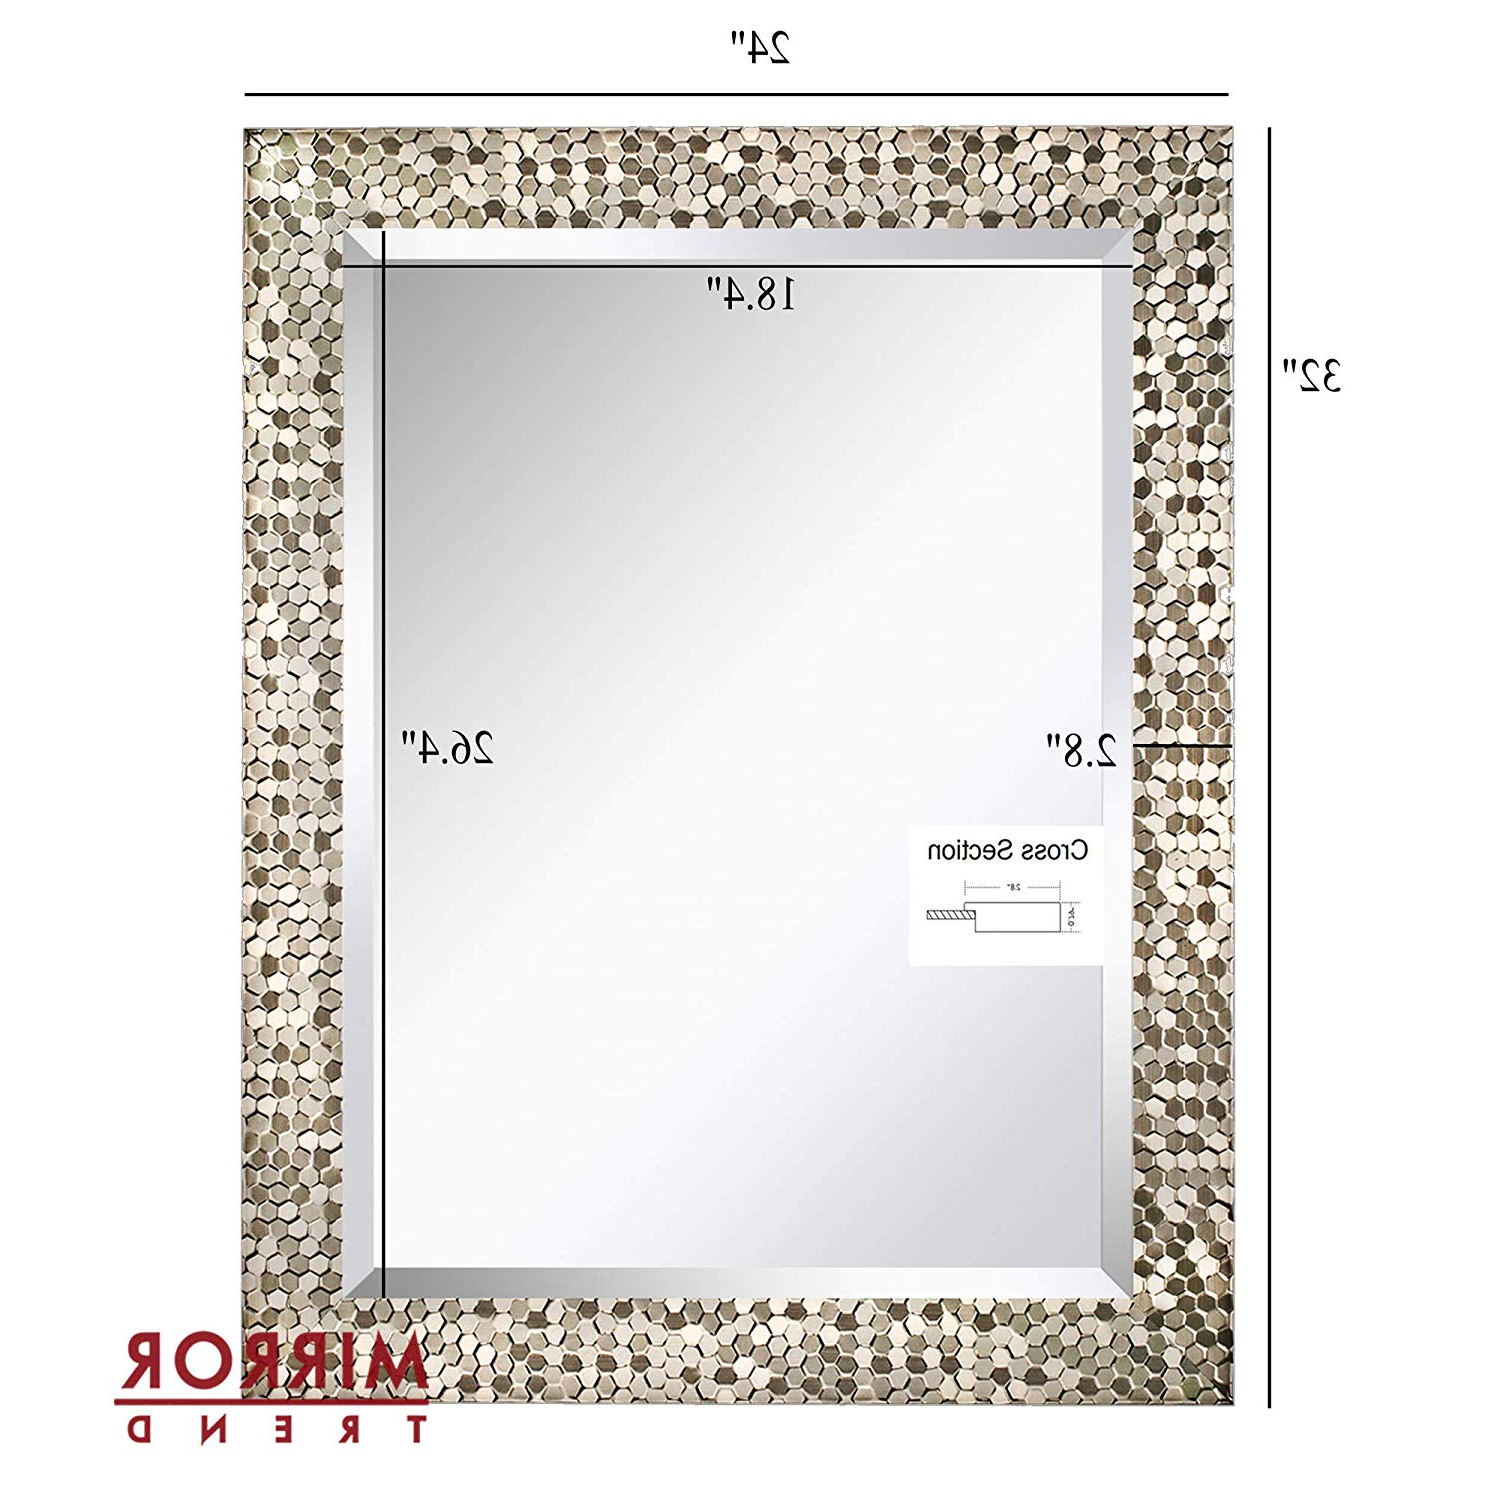 """Well Known Mirror Trend 24"""" X 32"""" Square Beveled Mirrors For Wall Mirrors For Living  Room Large Bathroom Mirrors Wall Mounted Mosaic Design Mirror For Wall Regarding Large Square Wall Mirrors (View 19 of 20)"""